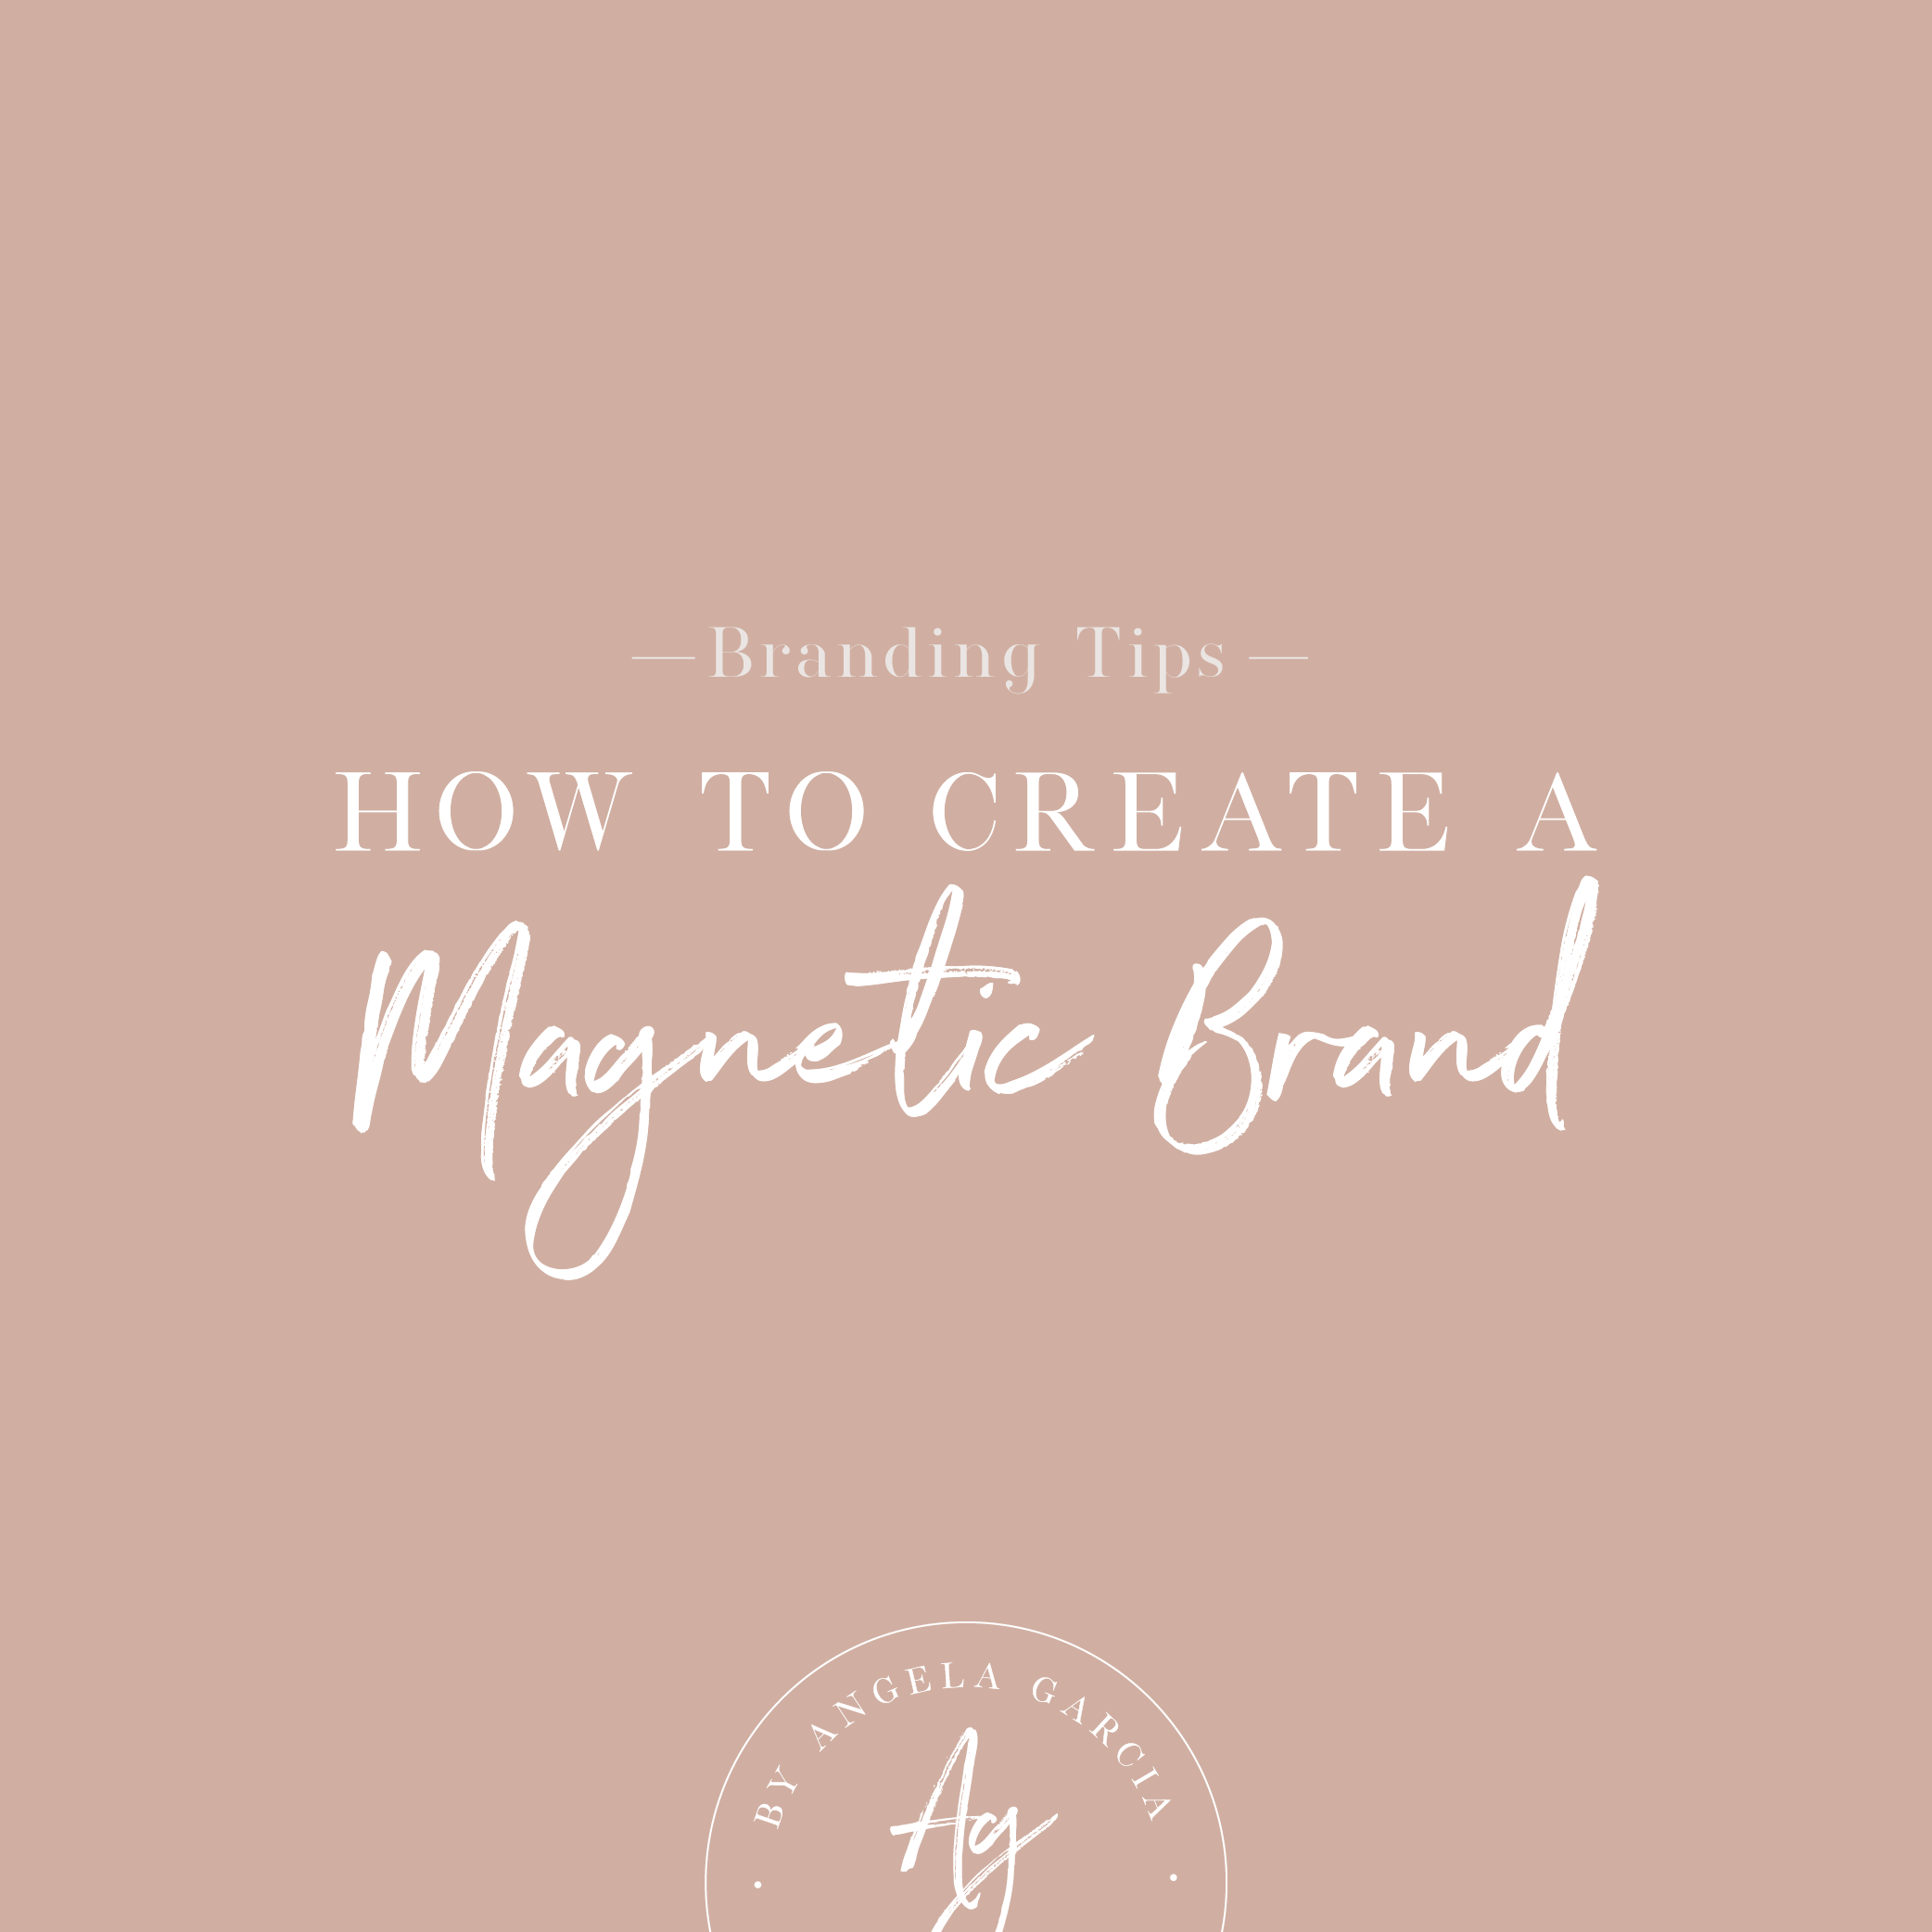 How to create a magnetic brand